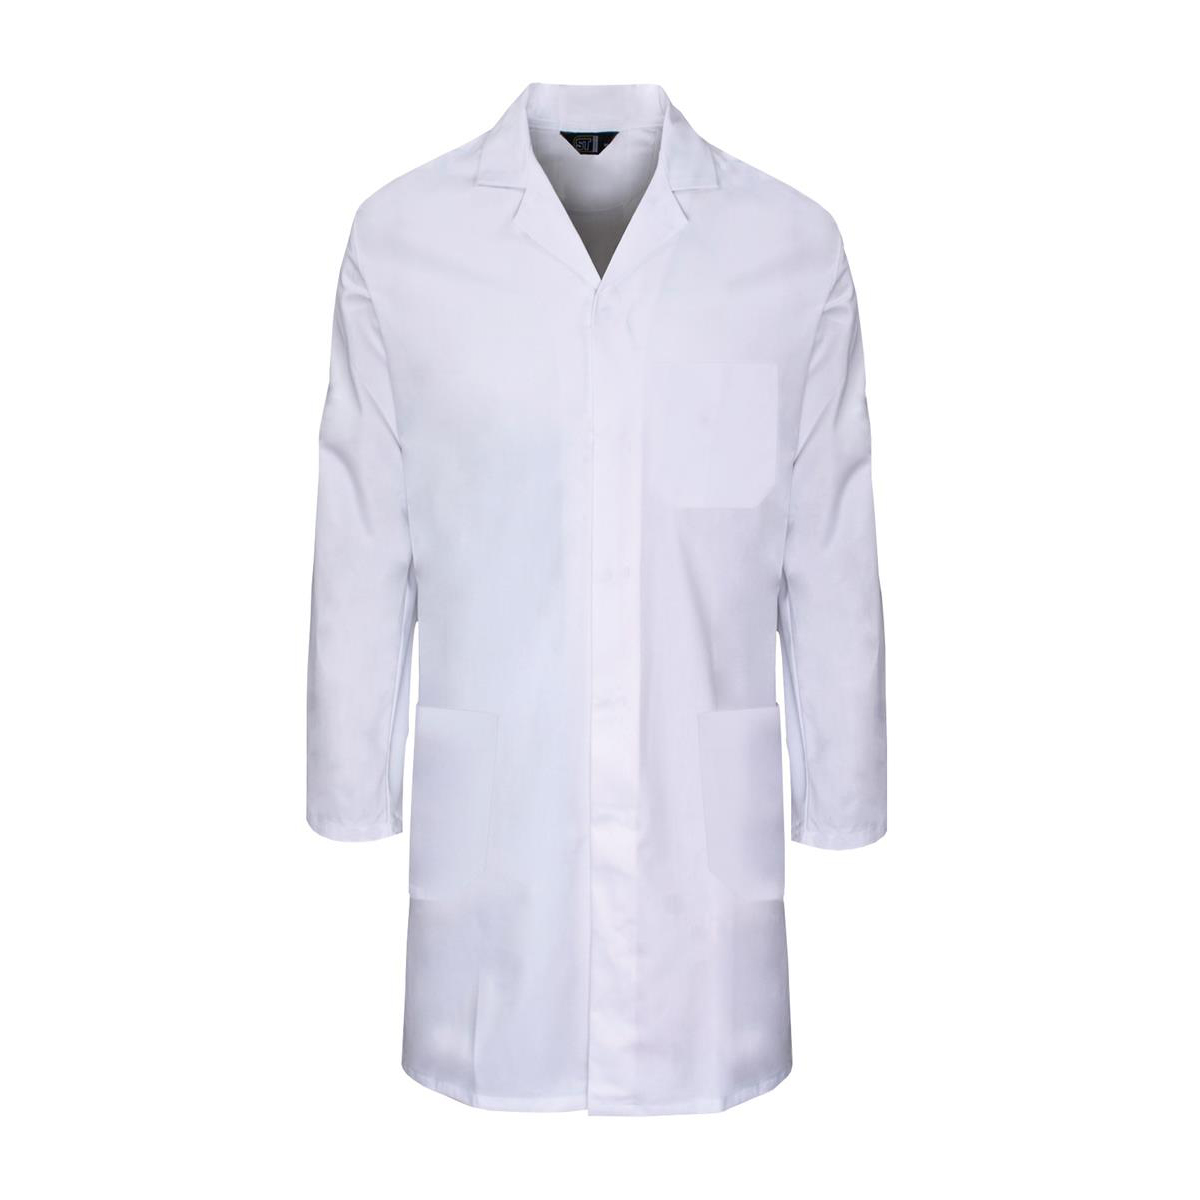 Lab Coat Polycotton with 3 Pockets Size Large White Ref PCWCW44 Approx 3 Day Leadtime